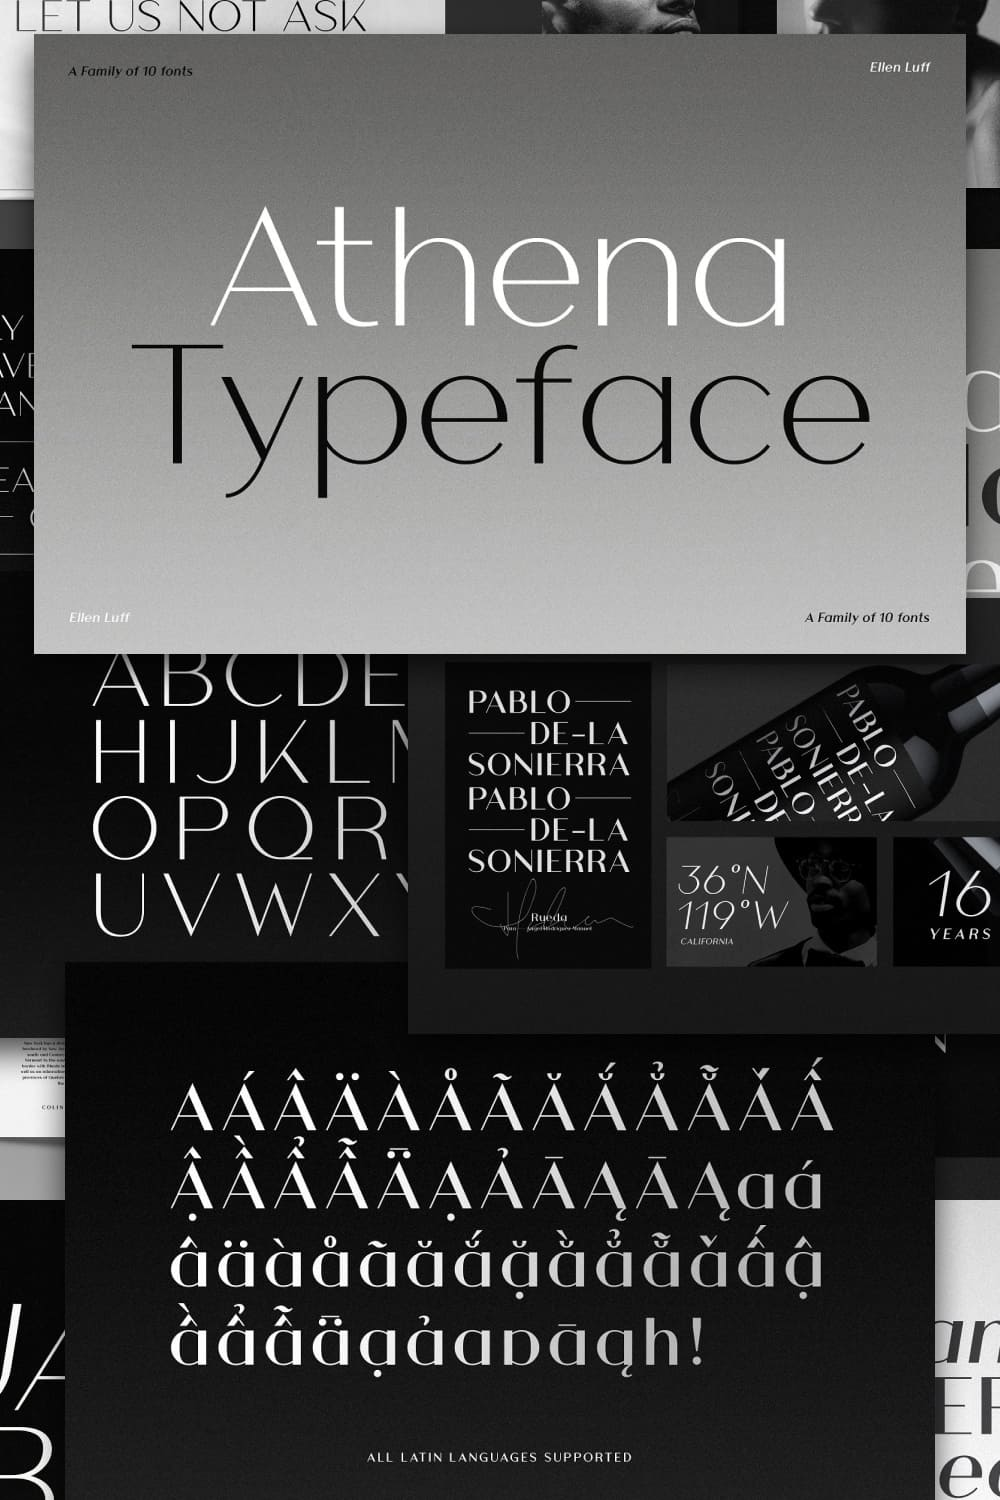 This font is a modern take of the old didone genre, confidently playing with extremes of thick strokes and whisper thin curves.